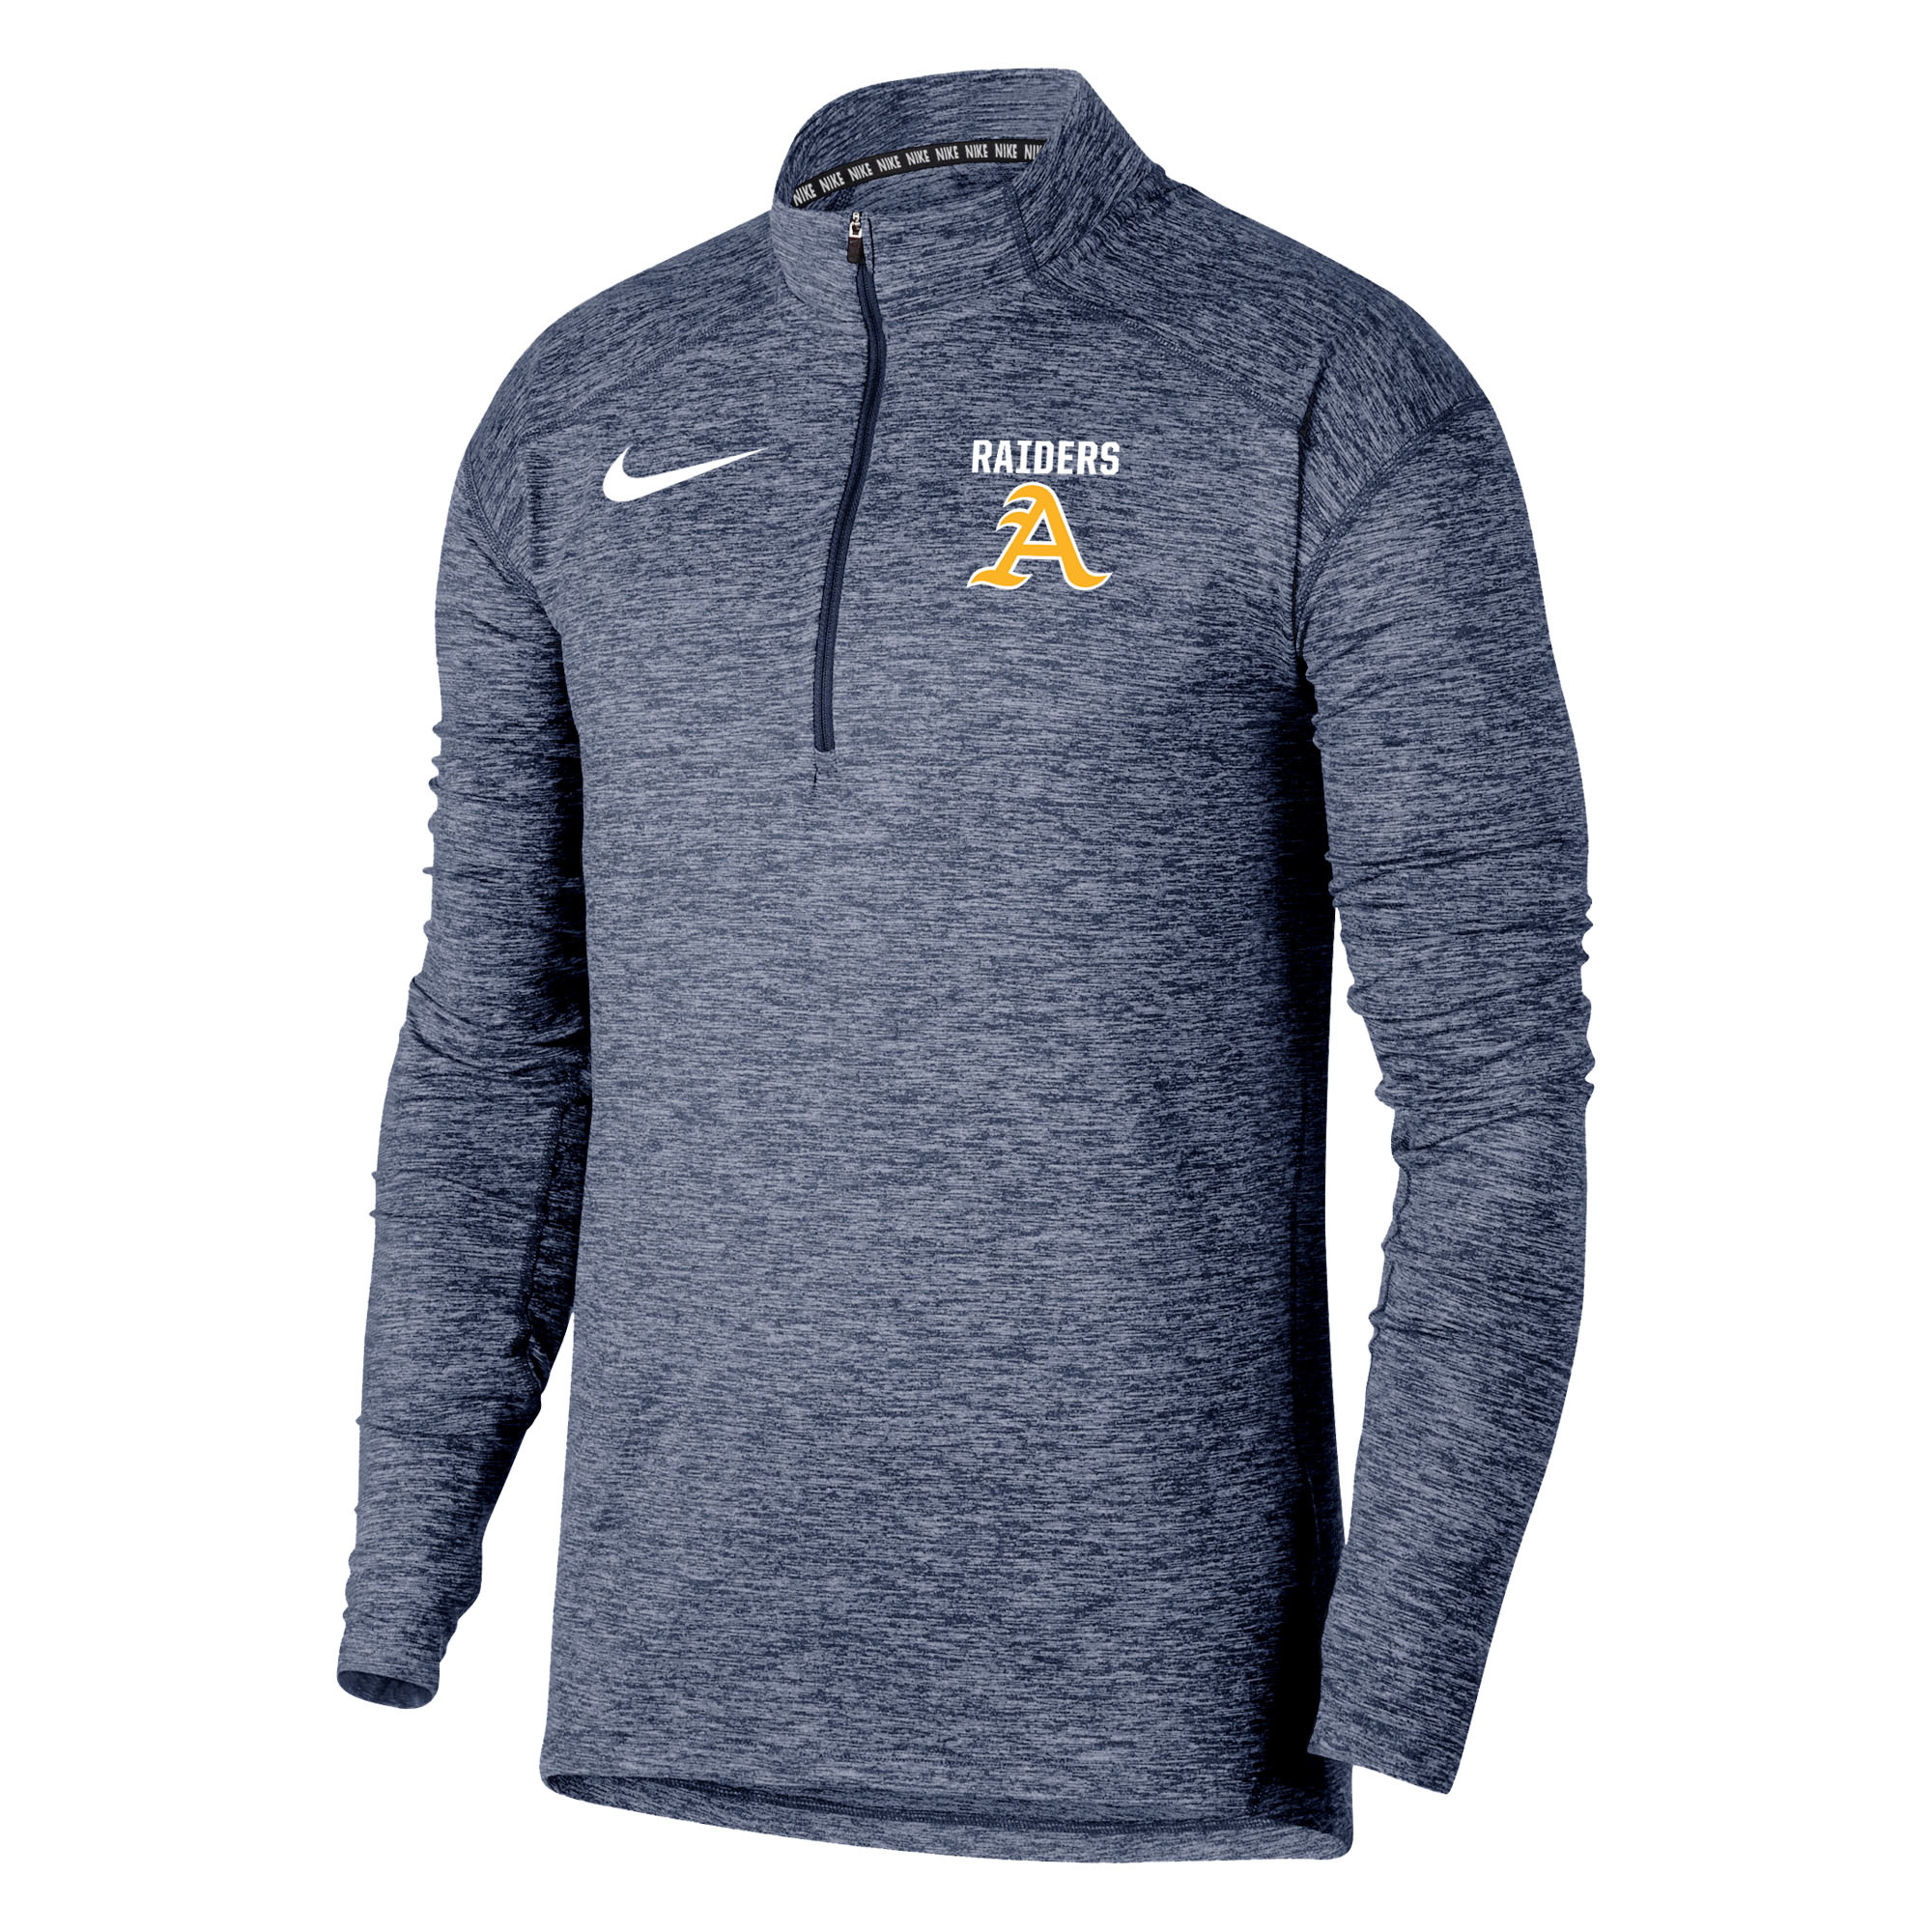 Nike Men's College Navy-Heather Element 1/4 Zip(M53795)